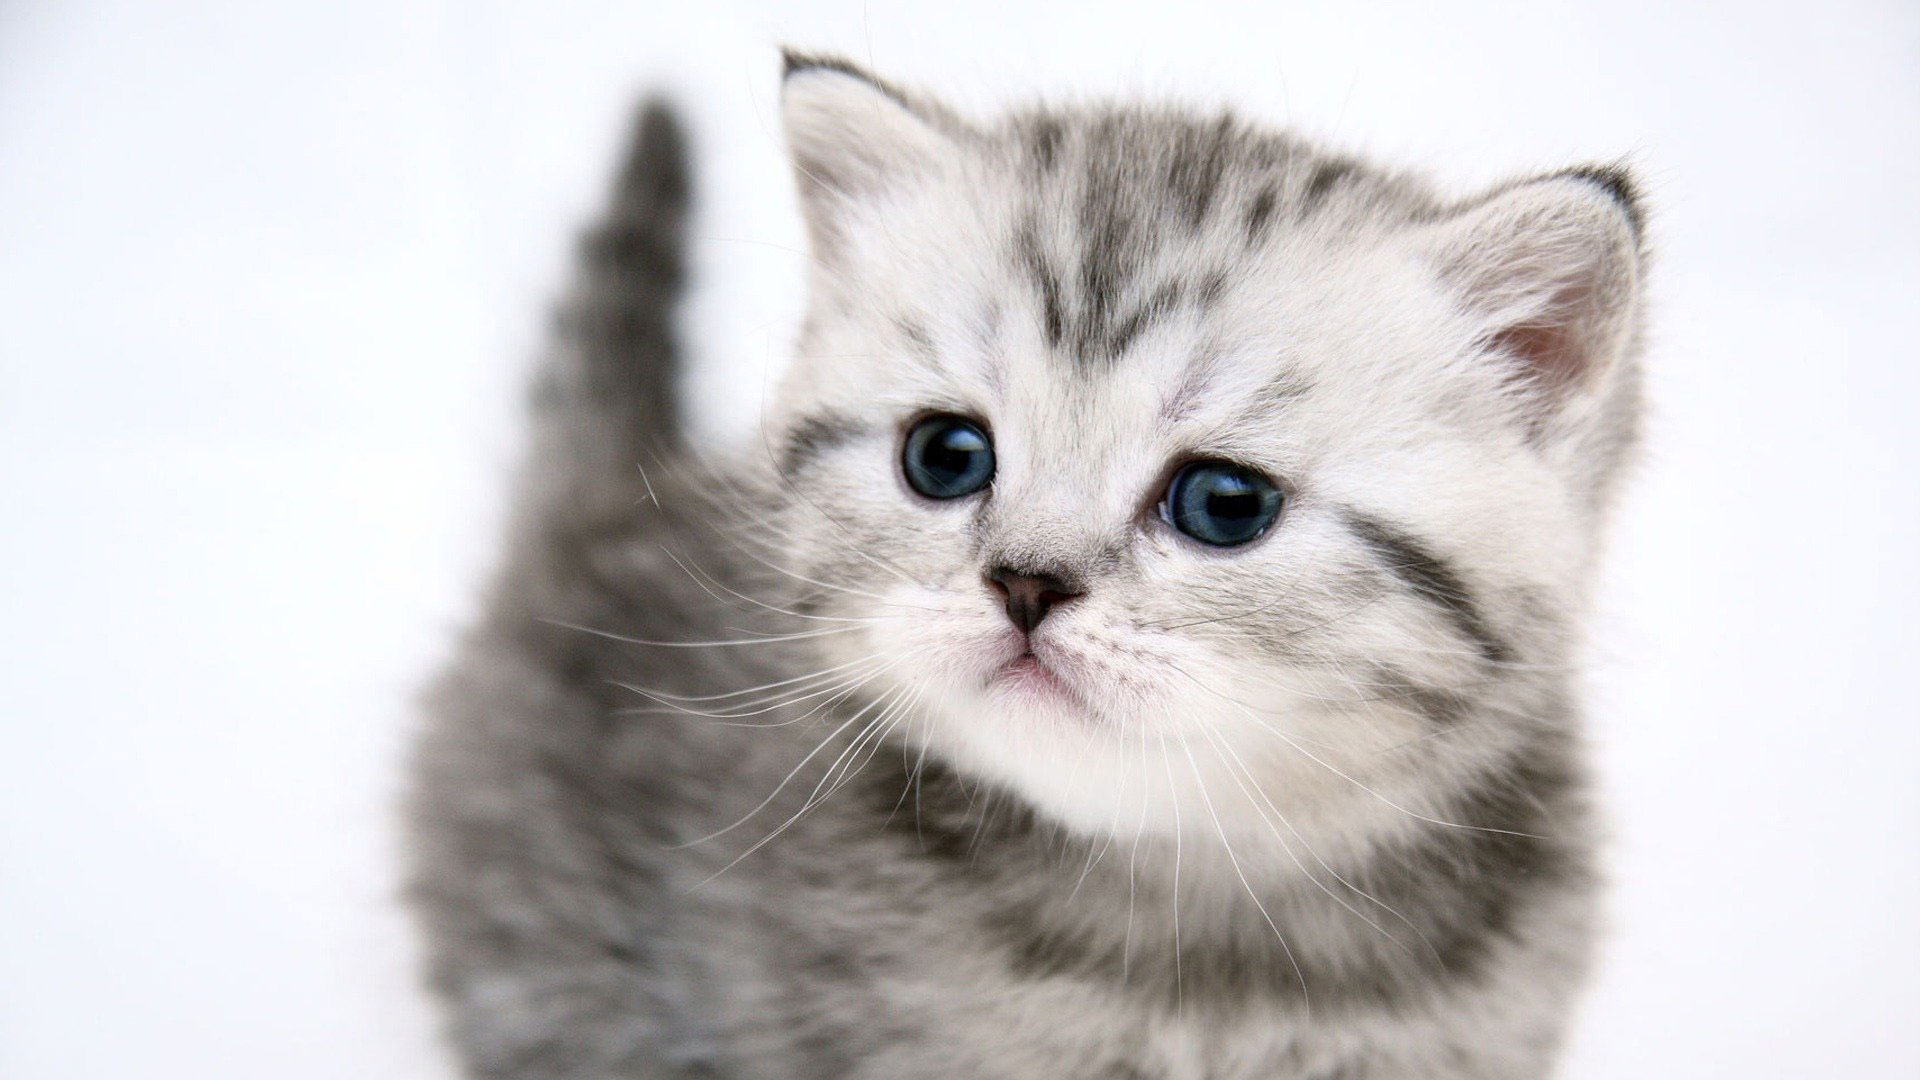 50 Free HD Cat Wallpapers Cat Wallpaper 2